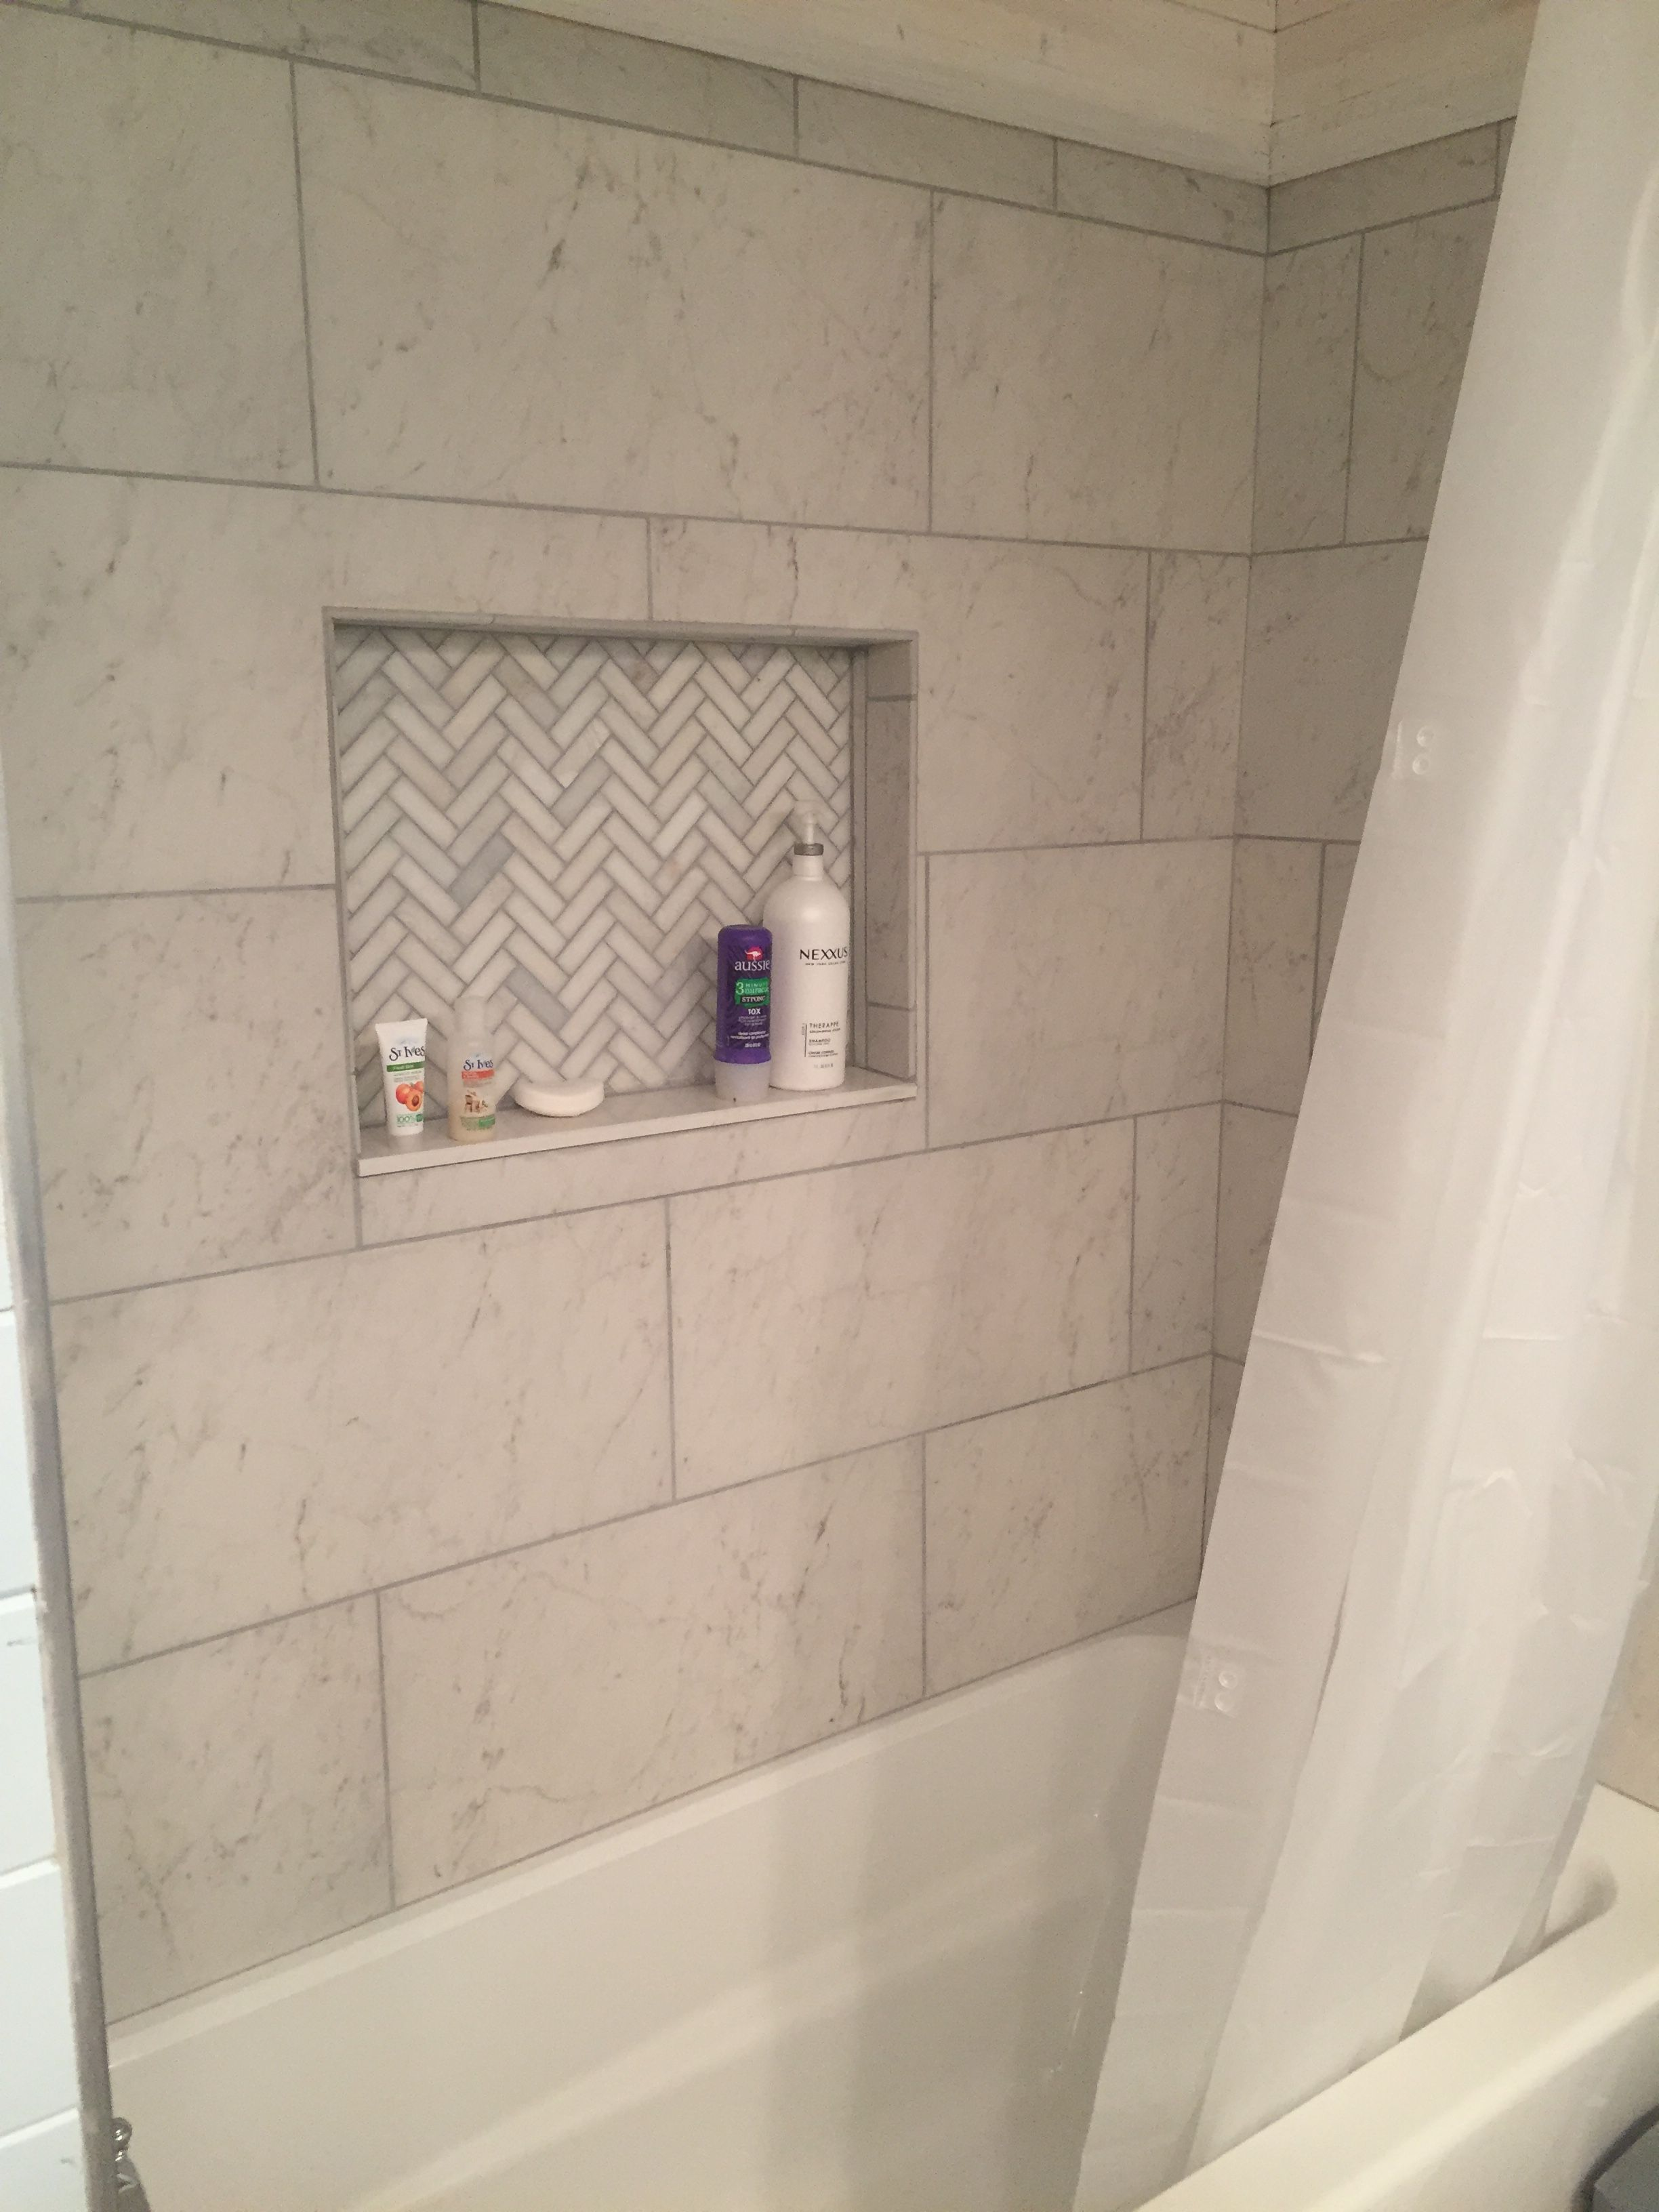 My Finished Shower Marble Tile Jacuzzi Brand Tub Herringbone - What to clean bathroom floors with